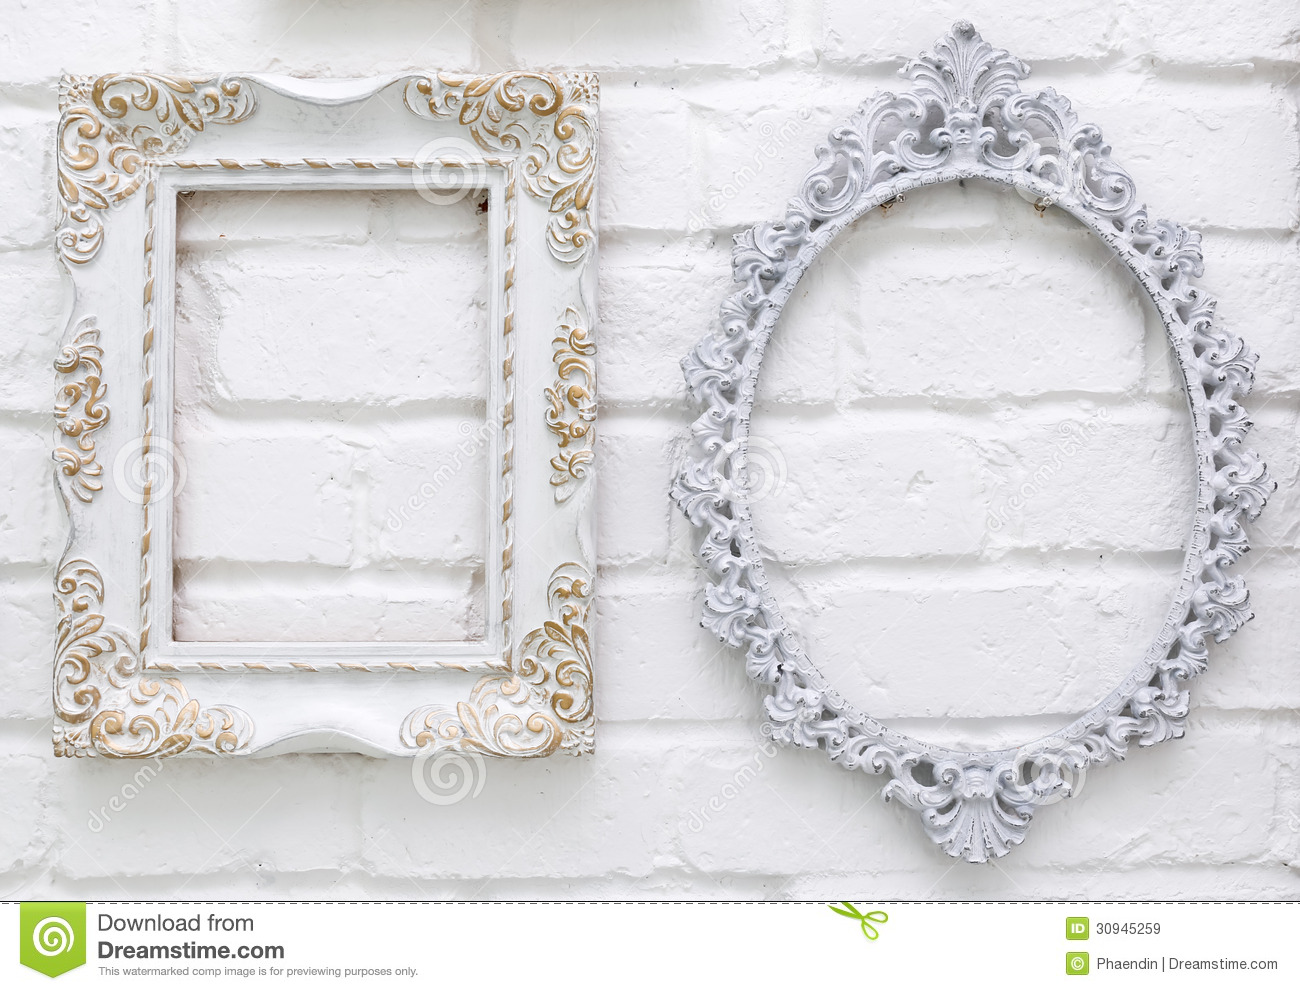 vintage picture frames on white brick wall - White Vintage Picture Frames